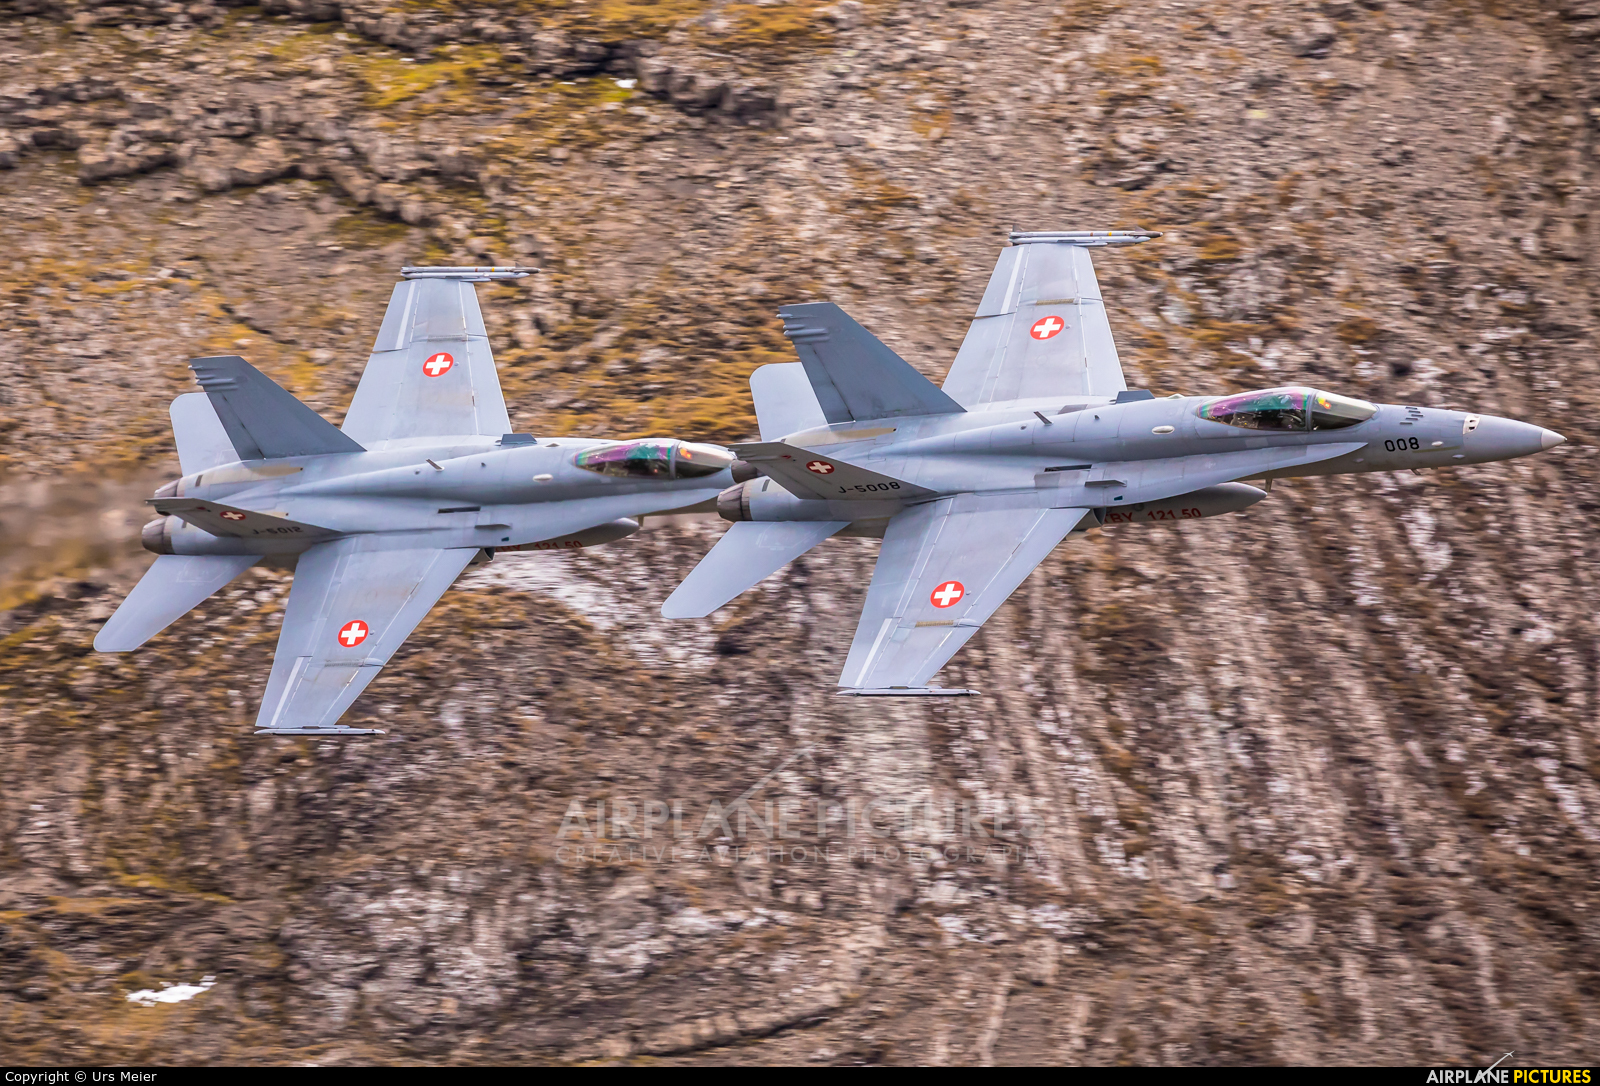 Switzerland - Air Force J-5008 aircraft at Axalp - Ebenfluh Range